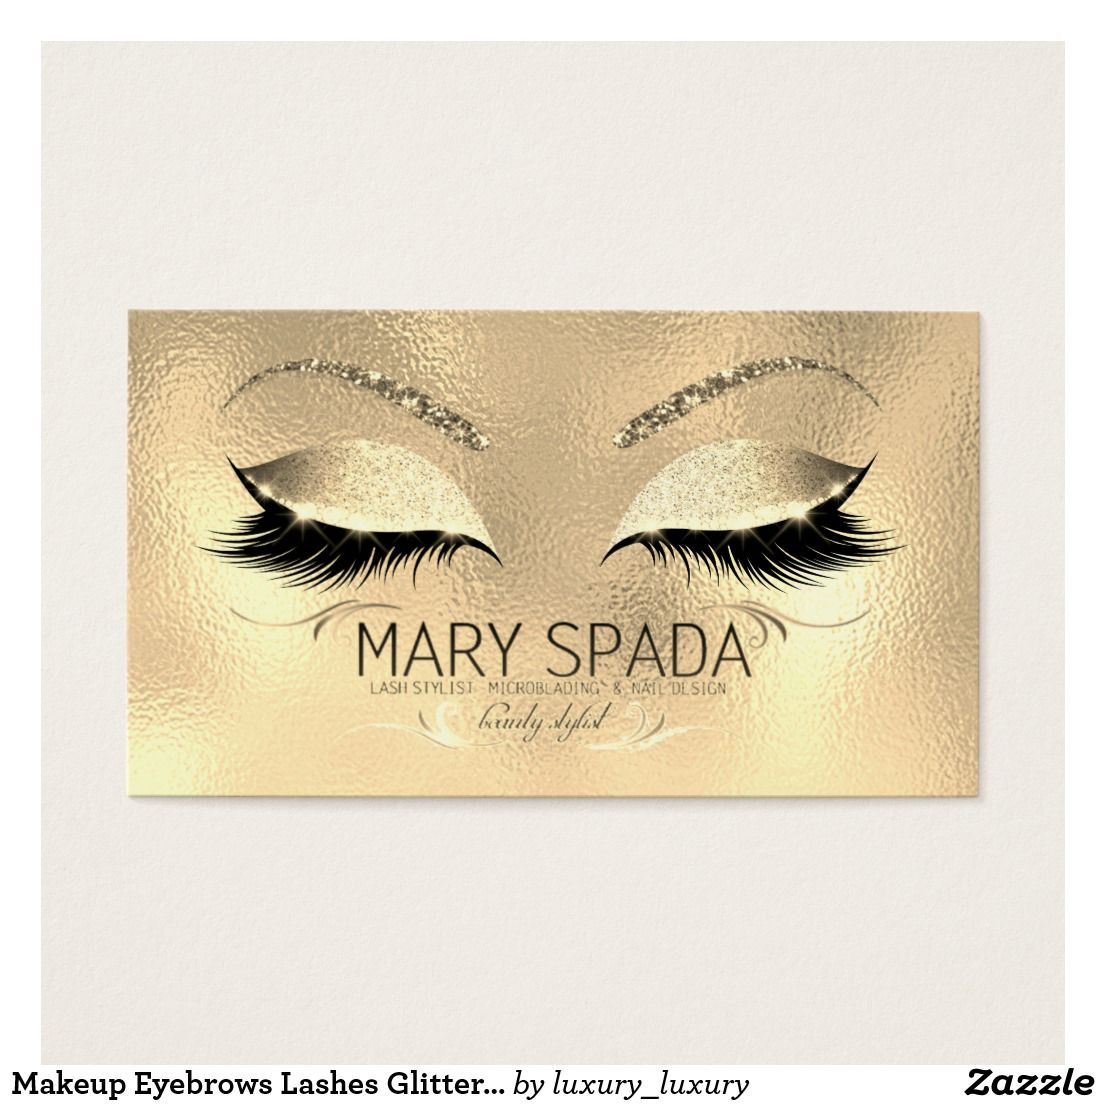 875ce78e78c Makeup Eyebrows Lashes Glitter Diamond Gold Name Business Card ...